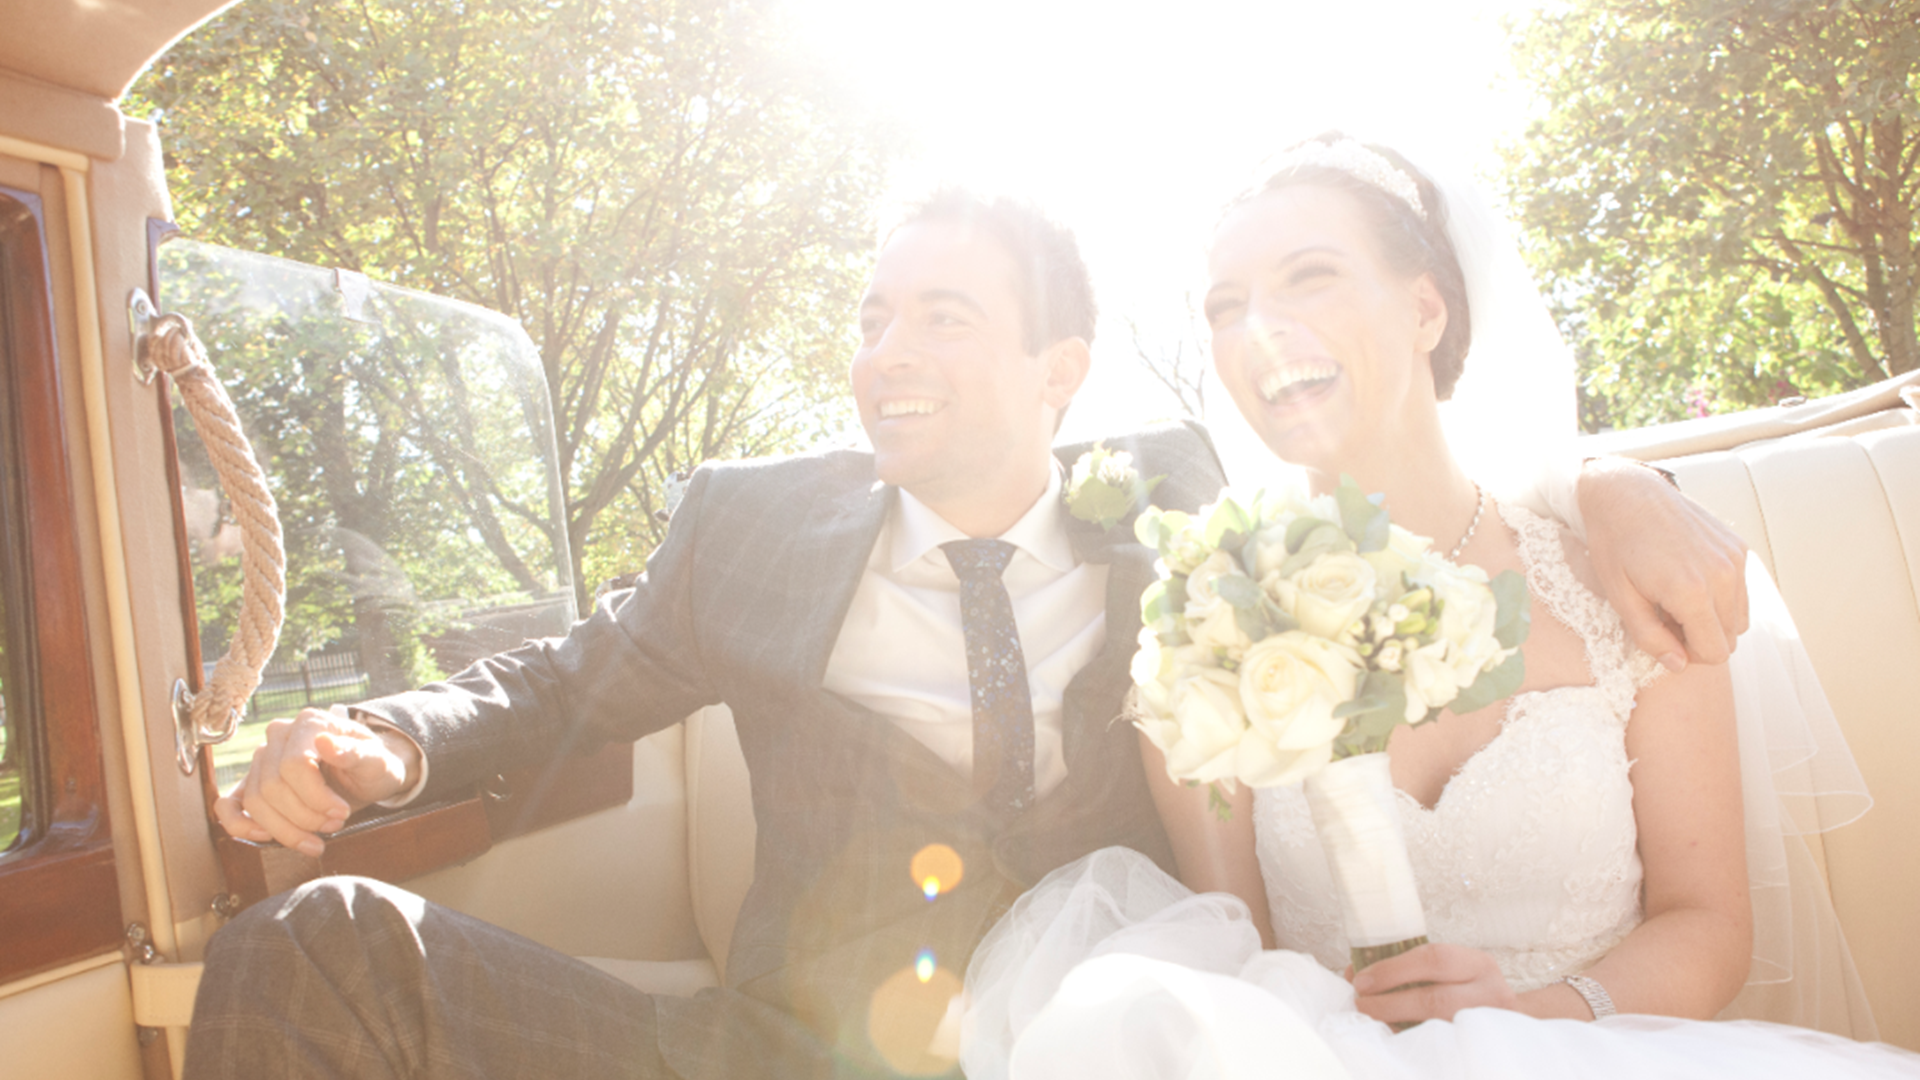 Newly married couple laughing and smiling in the back of their wedding car, driving through the trees with the sun shining